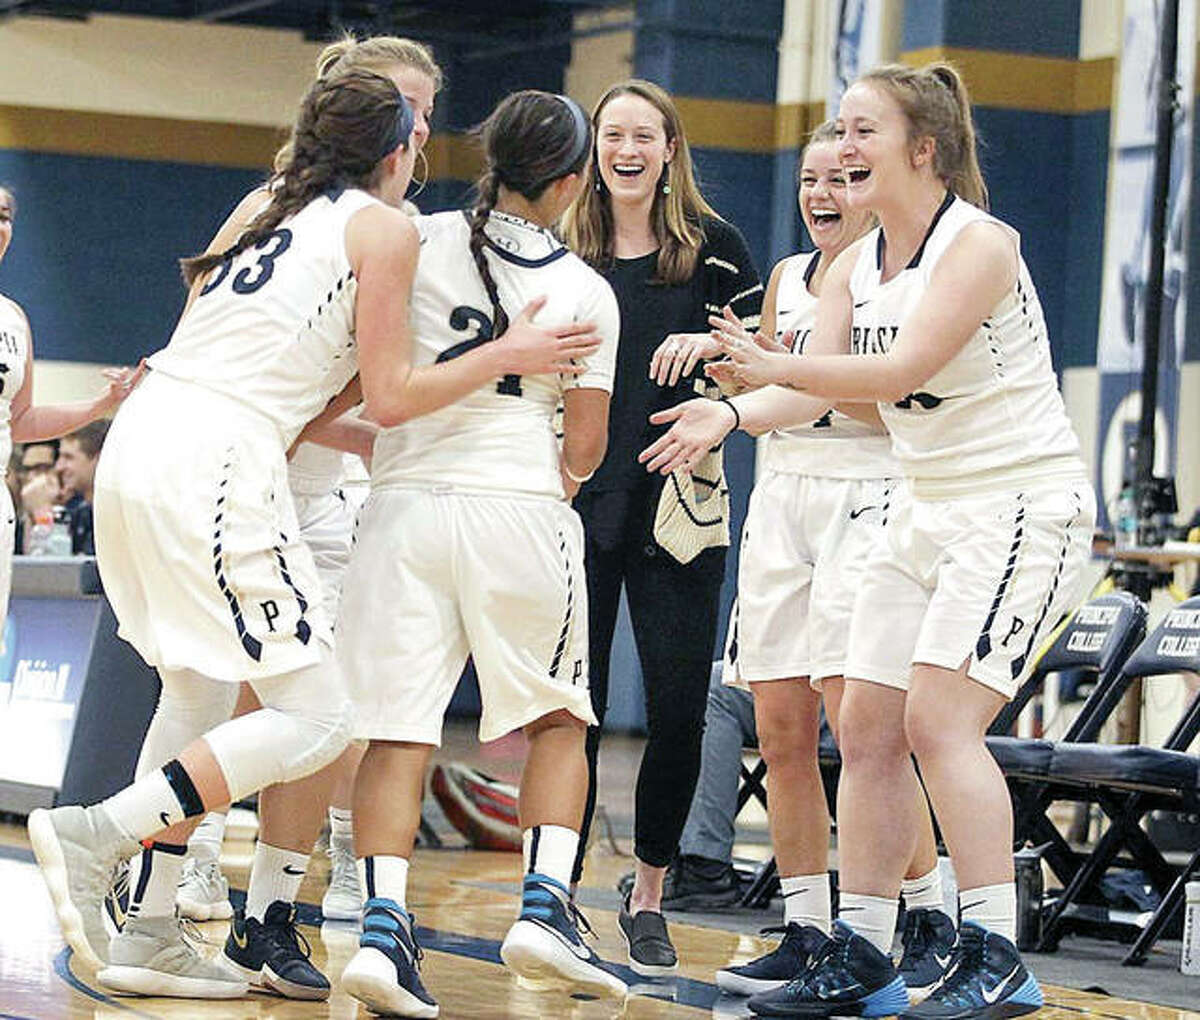 Members of the Principia College junior varsity women's basketball team celenrate during a recent game. Prin has announced that it will bring back varsity women's basketball next season following a two-season absence.